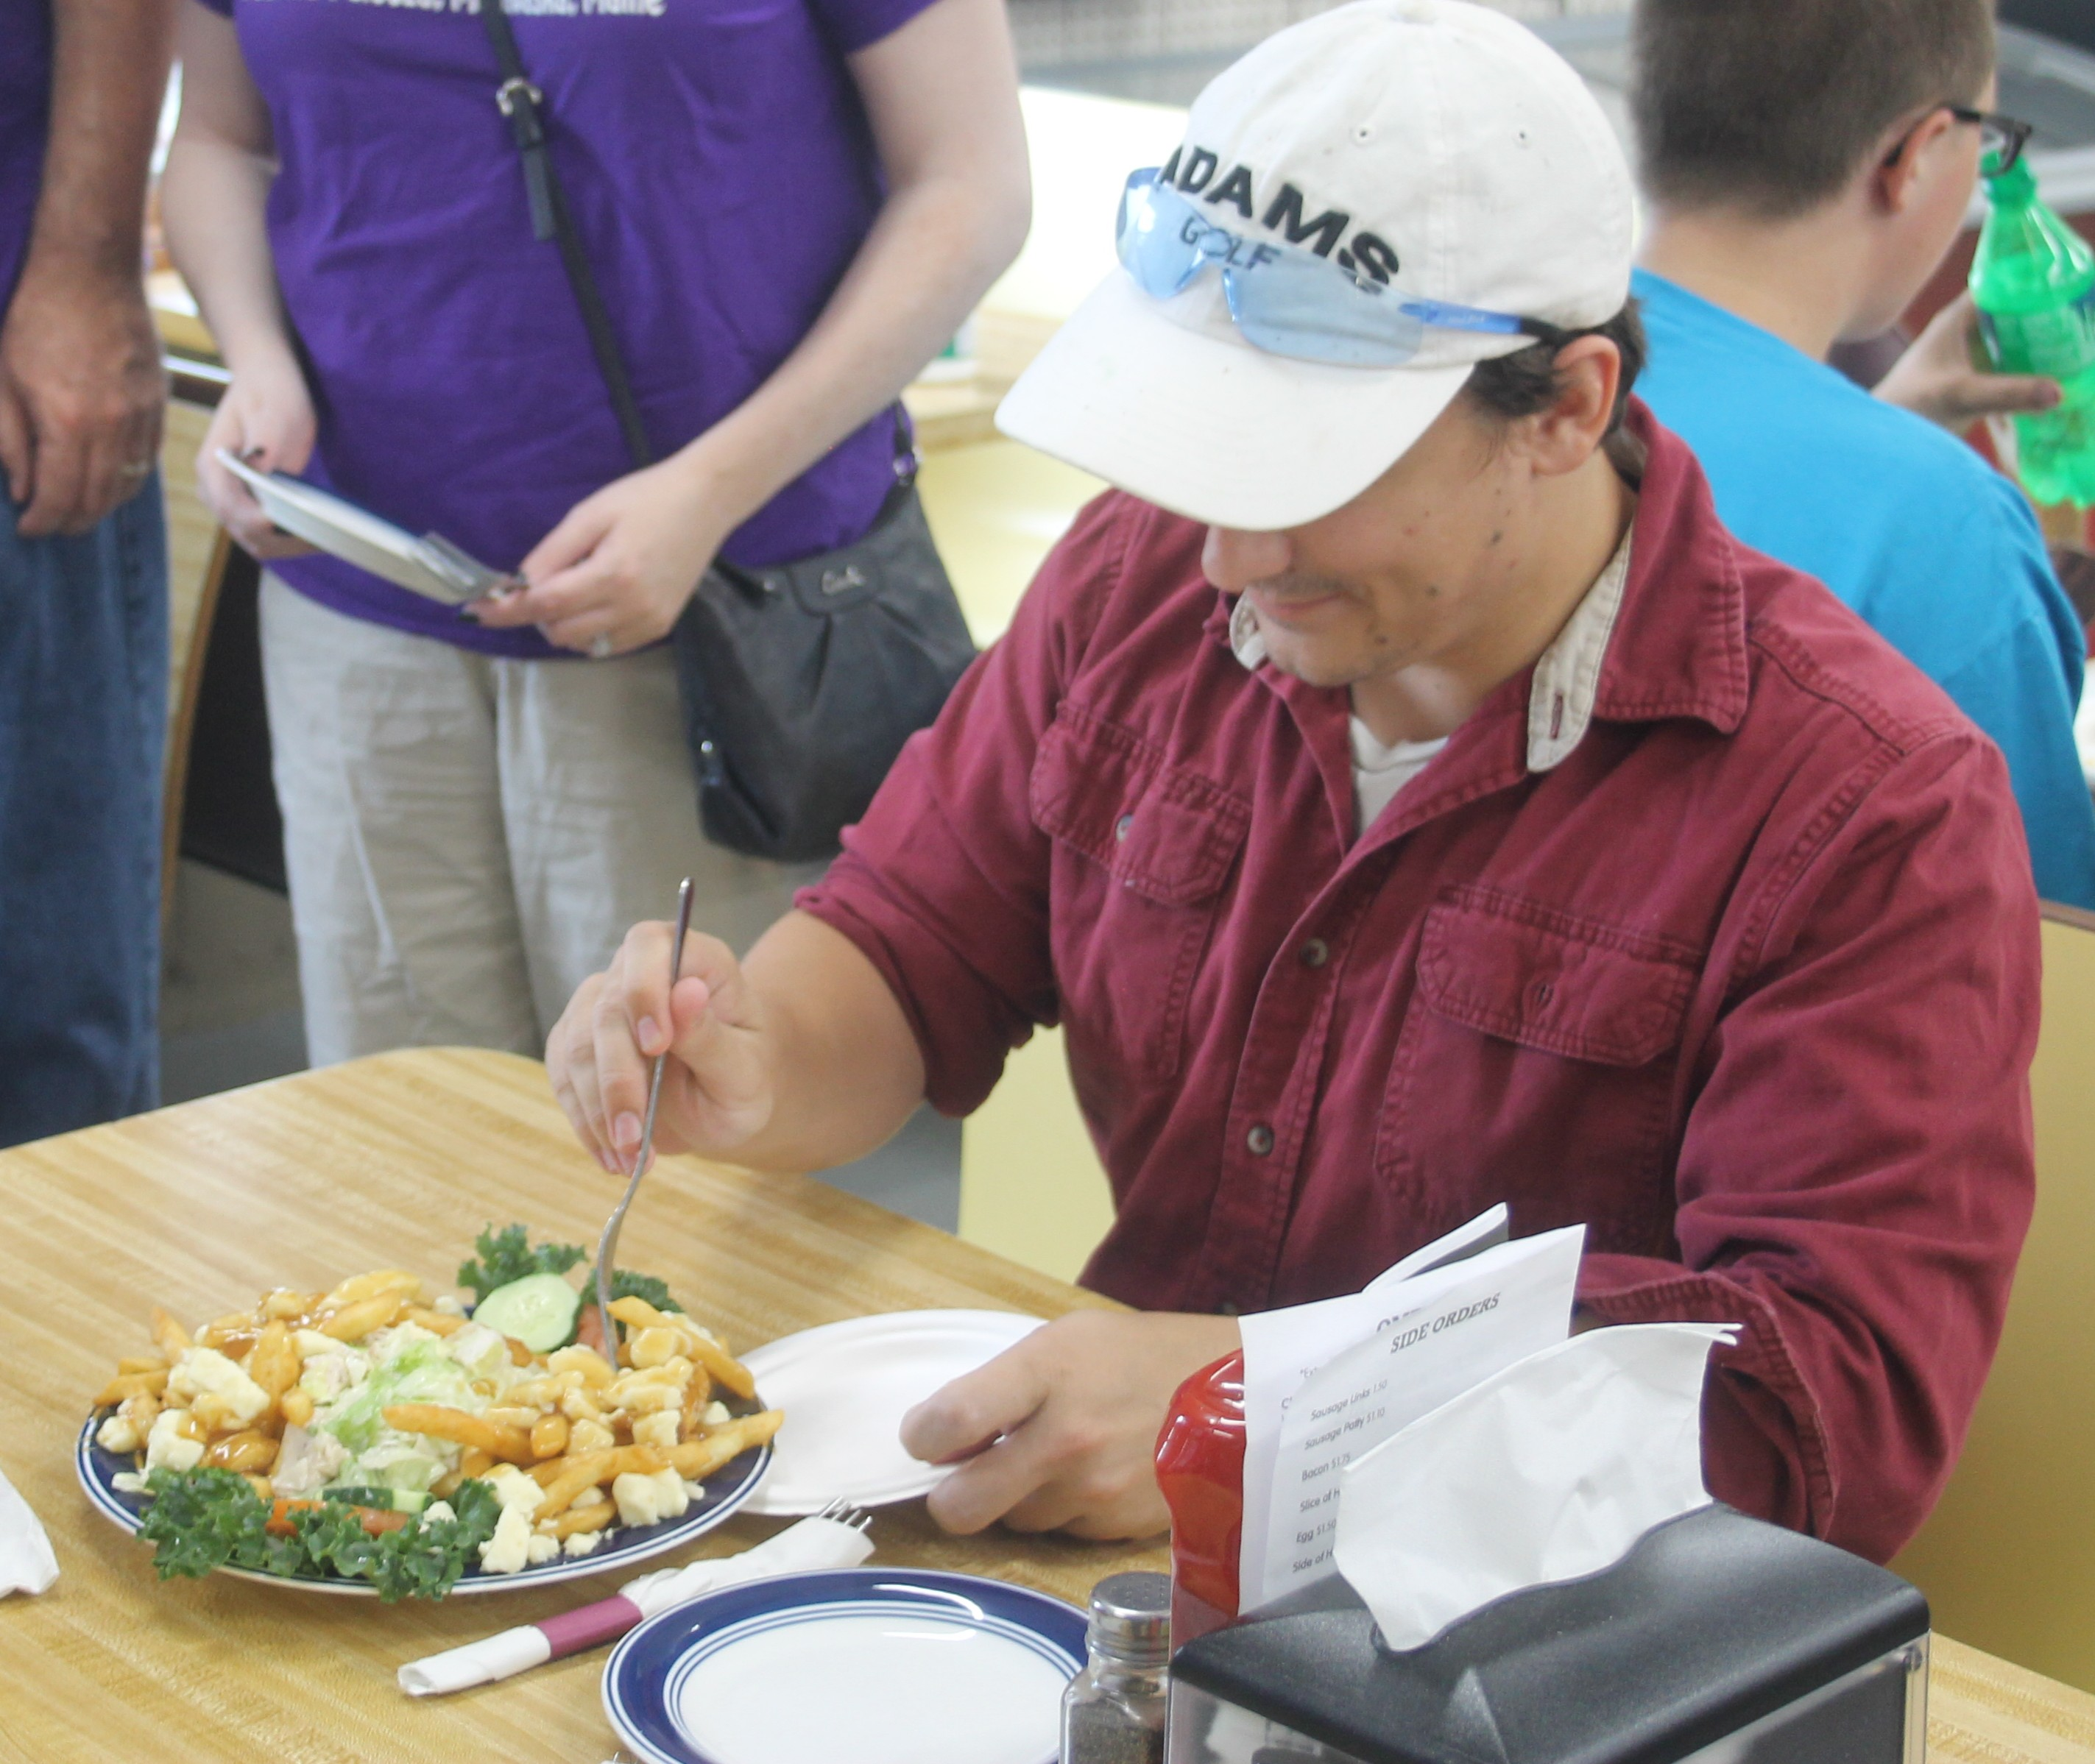 Judges Assess Entries In Search For Best Poutine In St John Valley